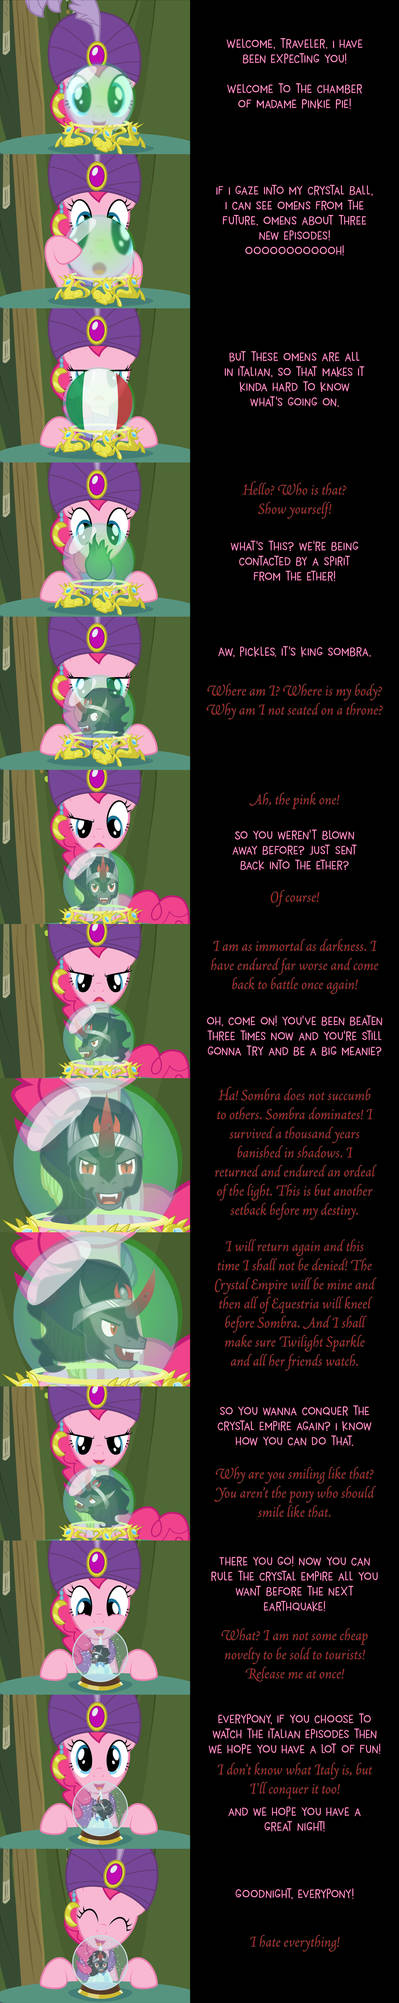 Pinkie Pie Says Goodnight: Wrong Channel by MLP-Silver-Quill